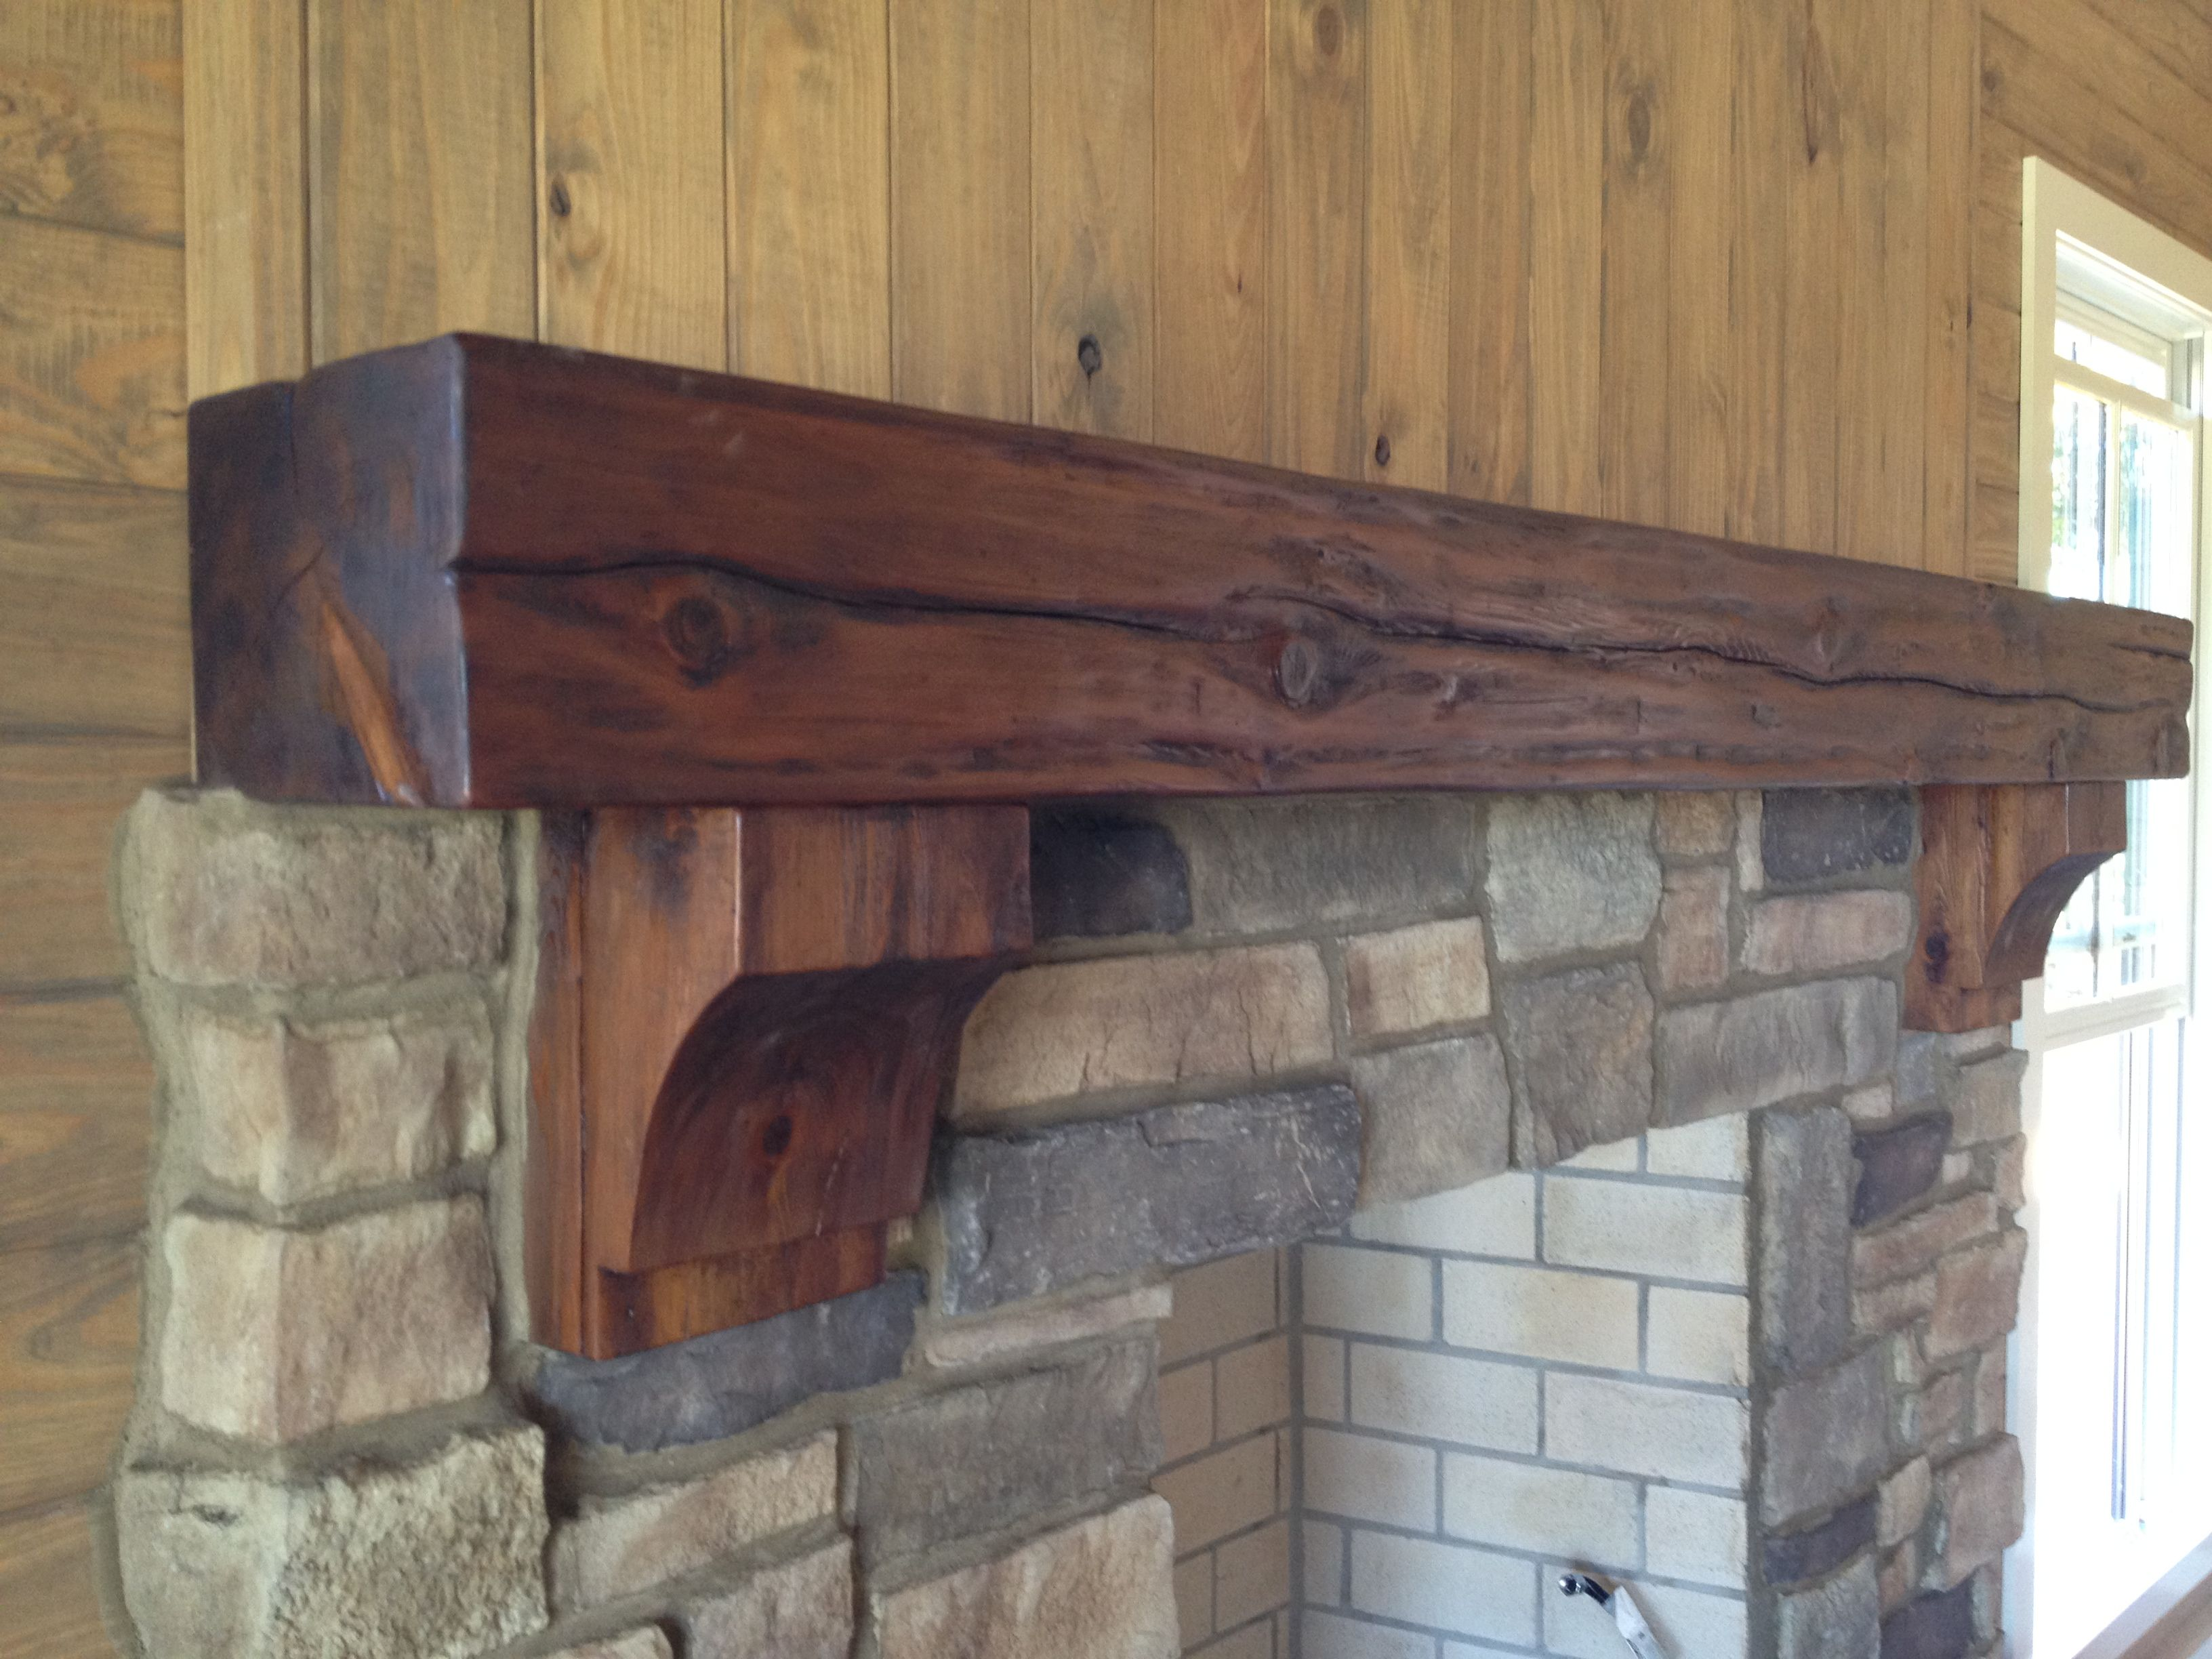 Rustic Timber Mantel With Corbels By Burruscompany Com Wooden Corbels Barn Beams Fireplace Mantel Shelf